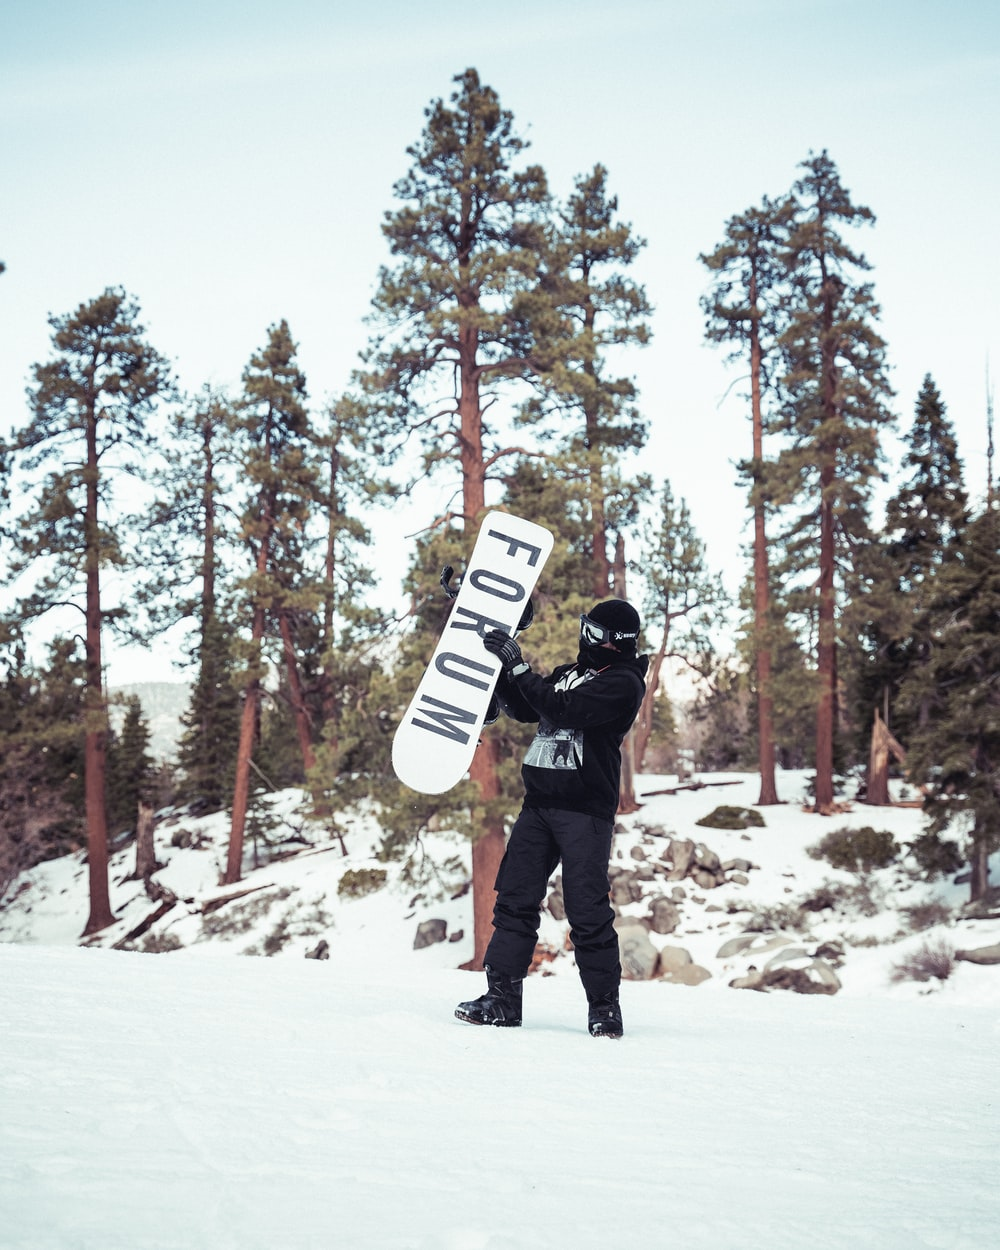 man in black jacket and black pants carrying white and black snowboard on snow covered ground